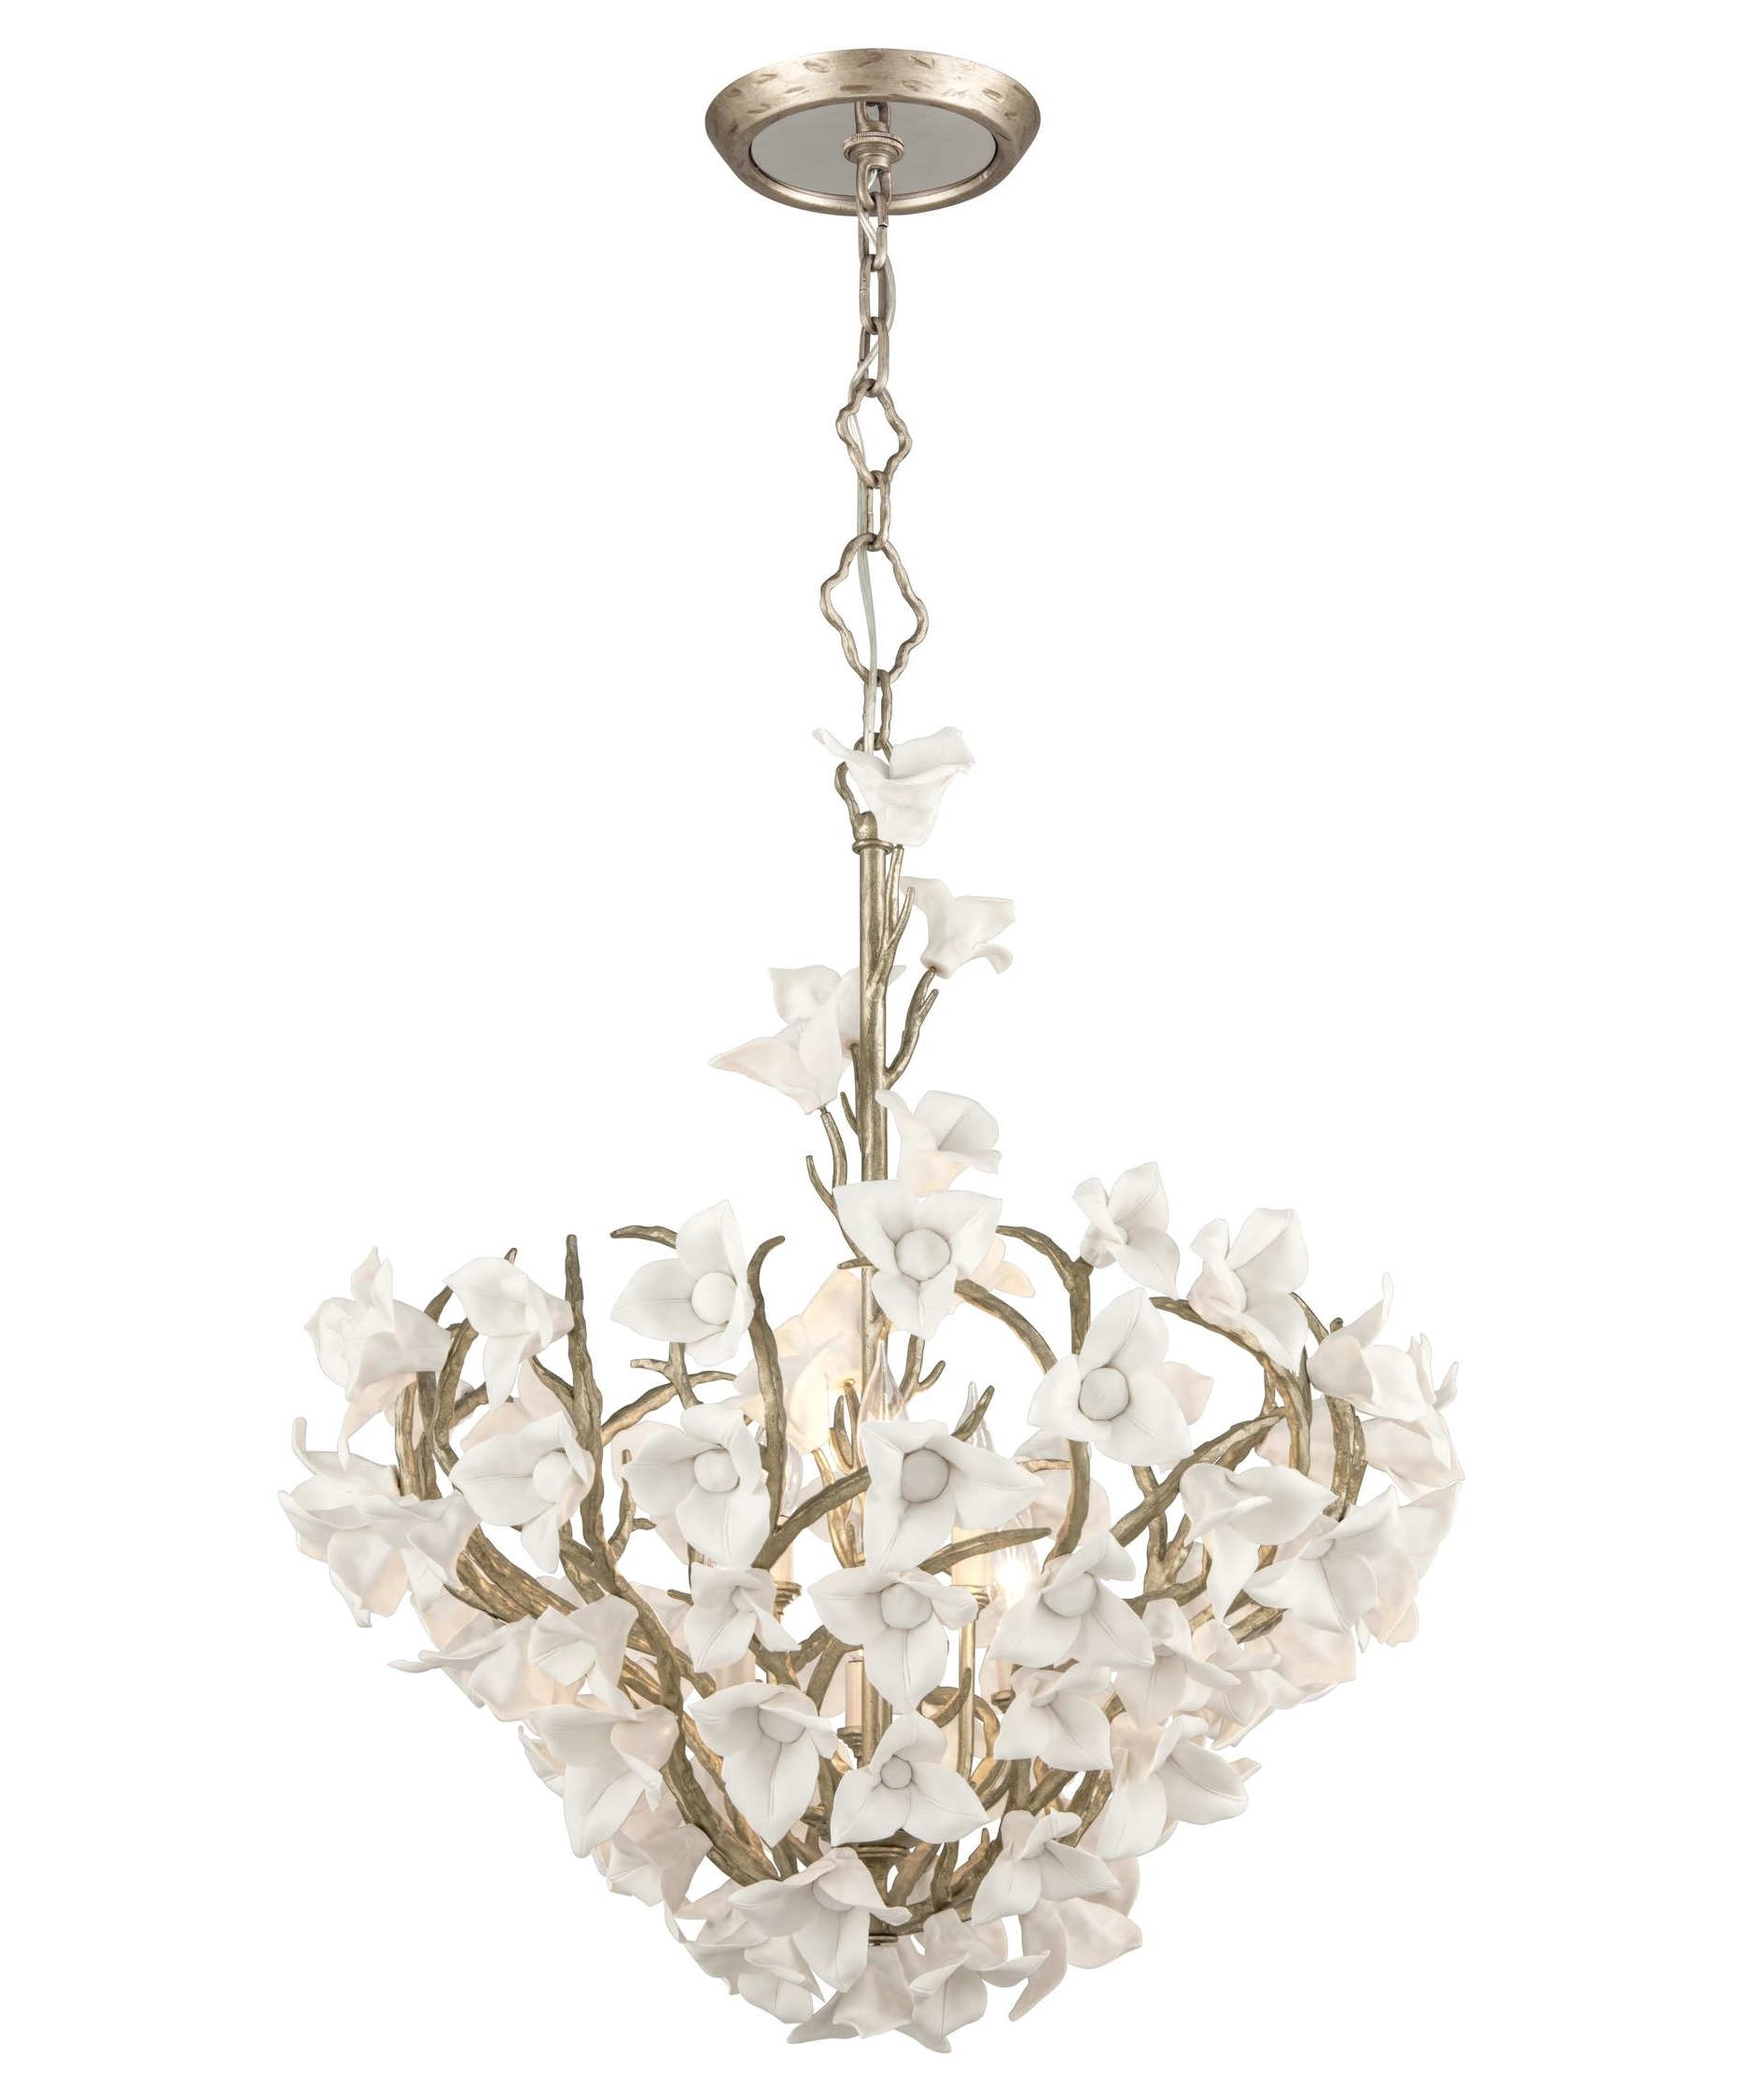 Preferred Corbett Lighting 211 47 Lily 26 Inch Wide 6 Light Large Pendant Within Lily Chandeliers (View 12 of 15)